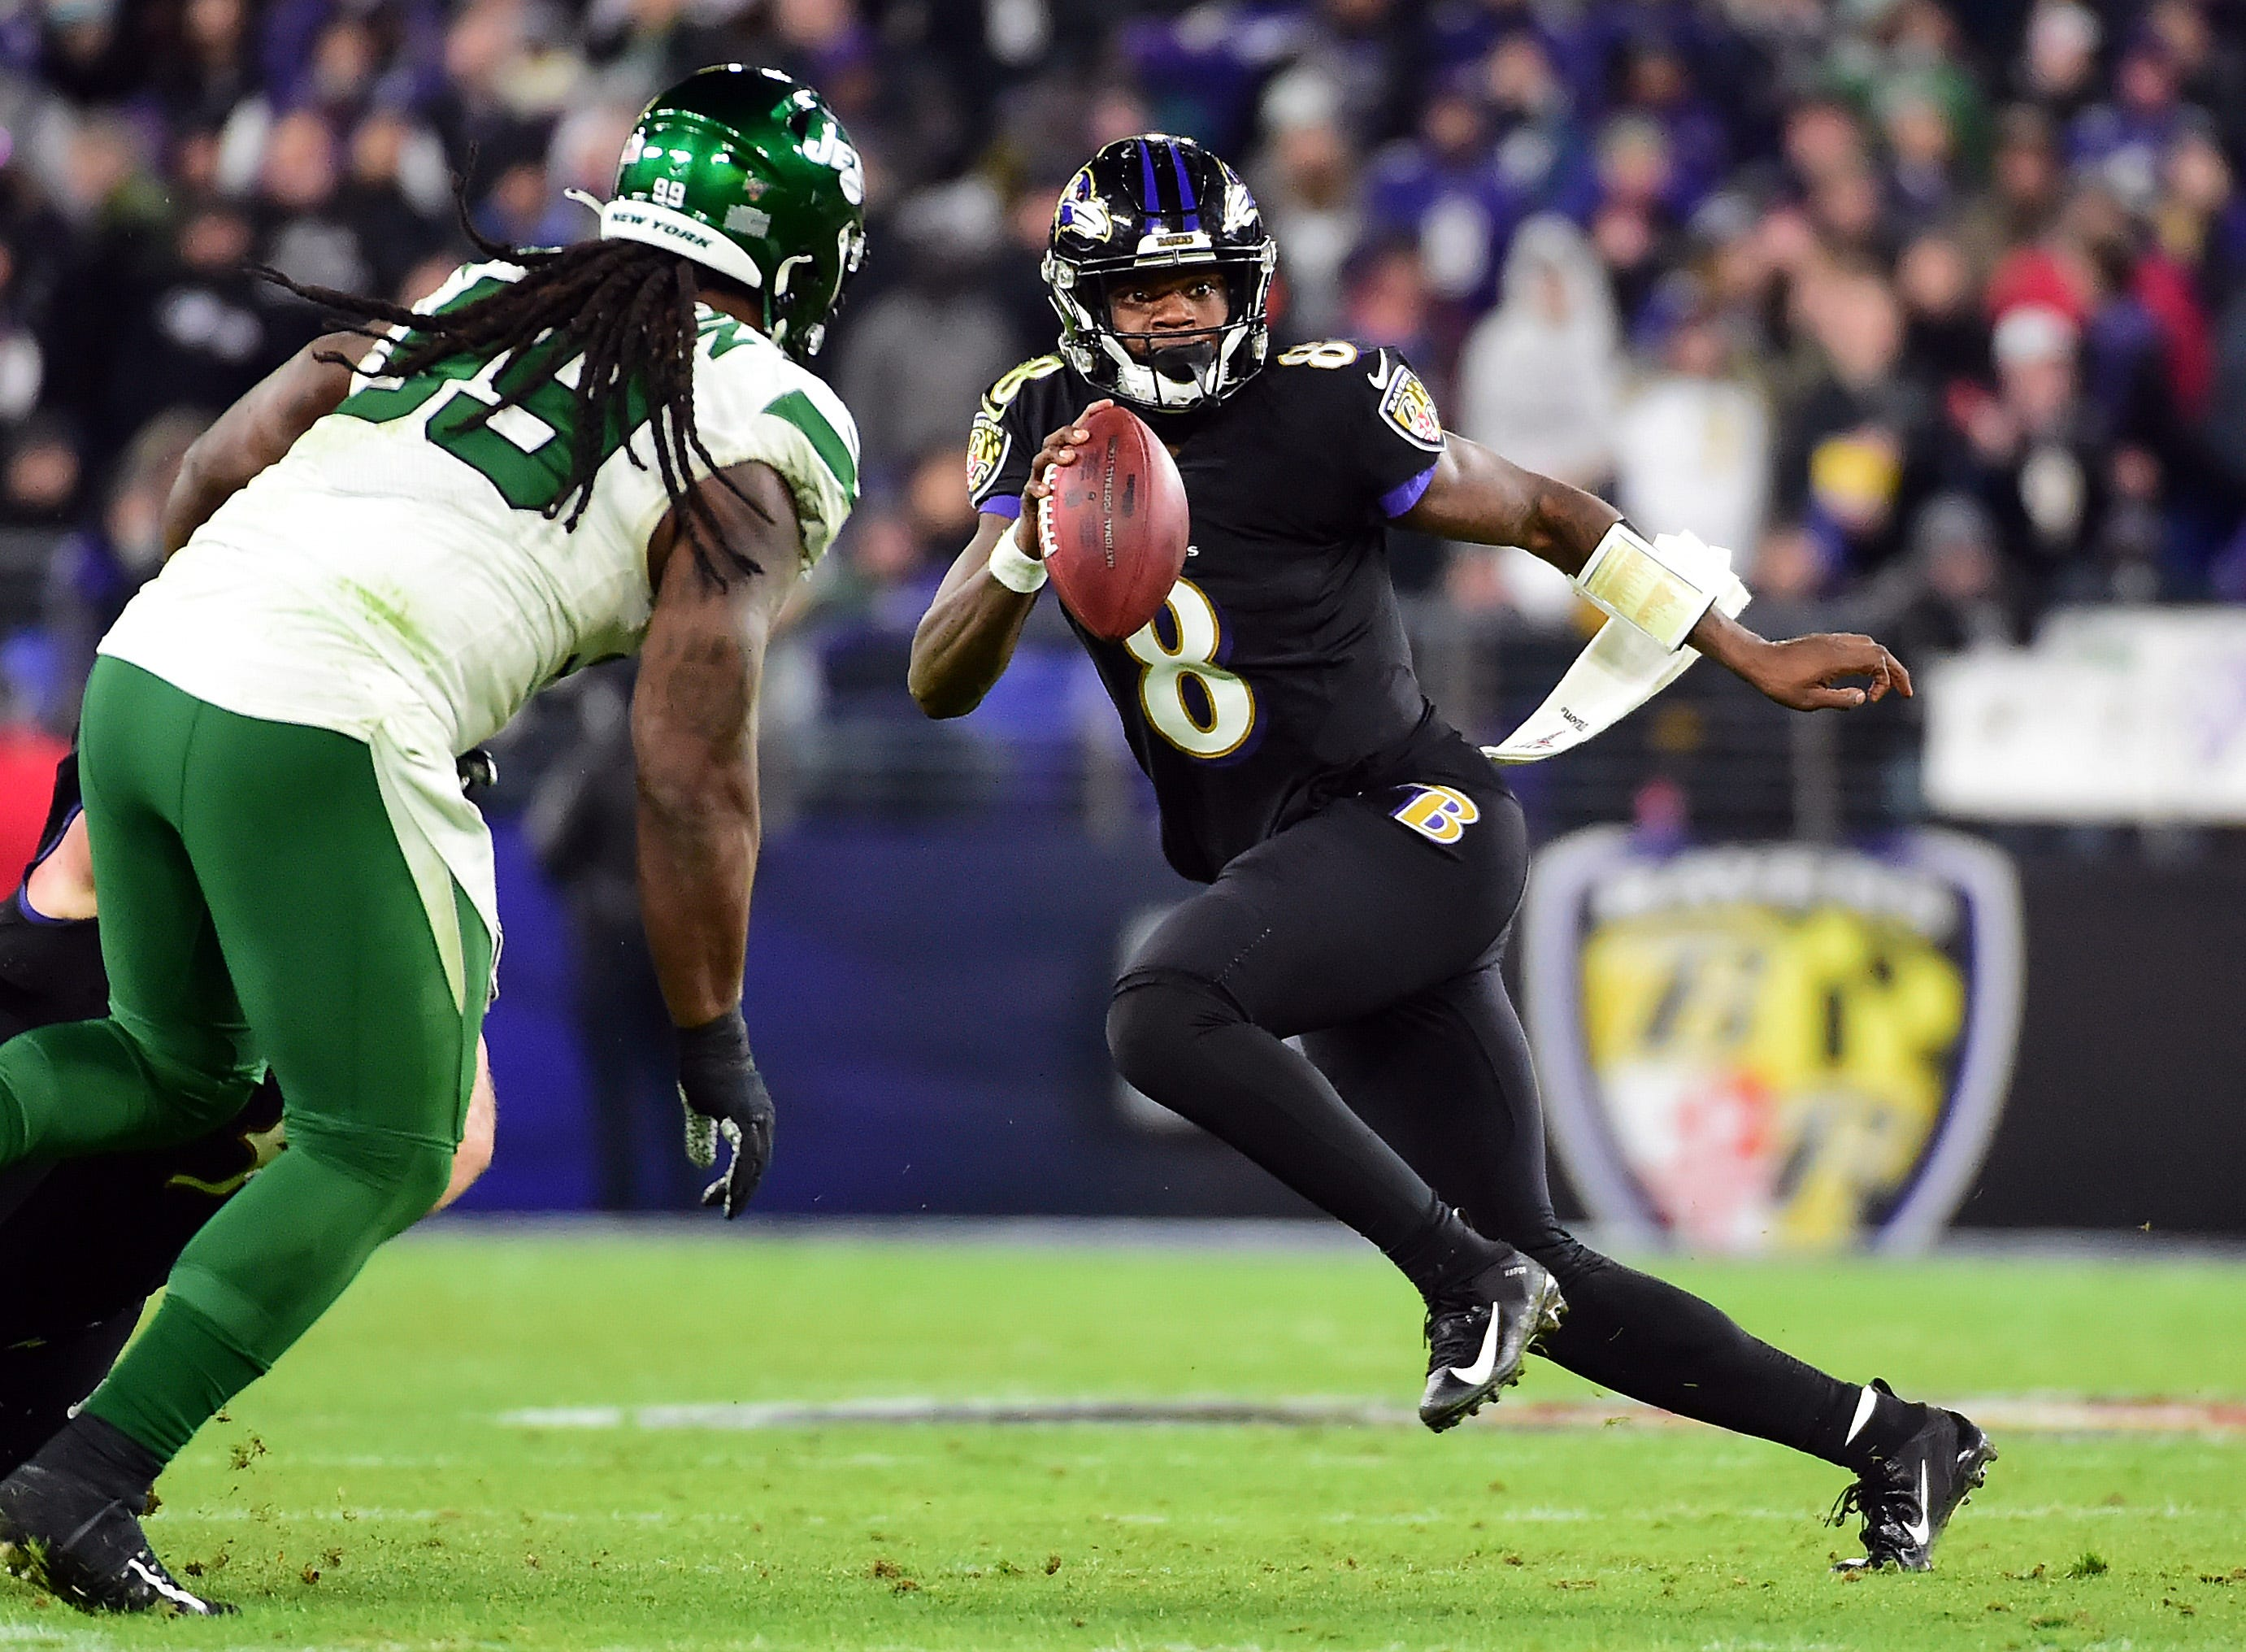 Opinion: With AFC North title in hand, should the Ravens be cautious with Lamar Jackson?